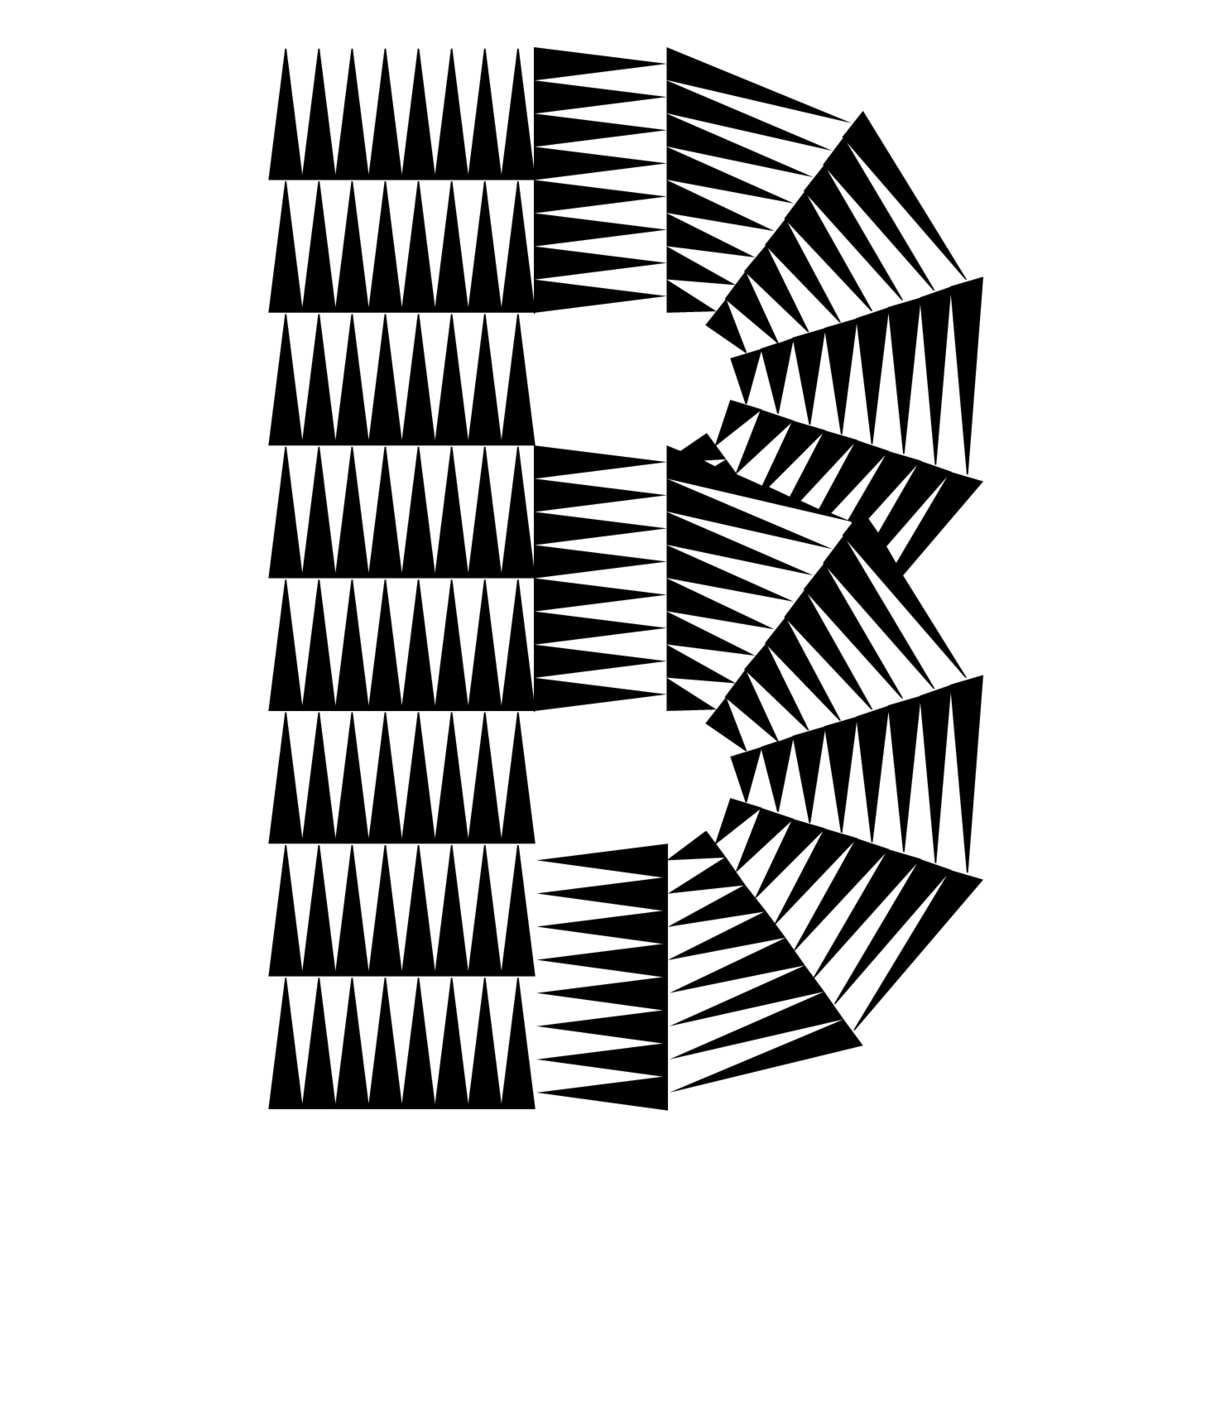 pattern-project-letters-01-1220x1407px